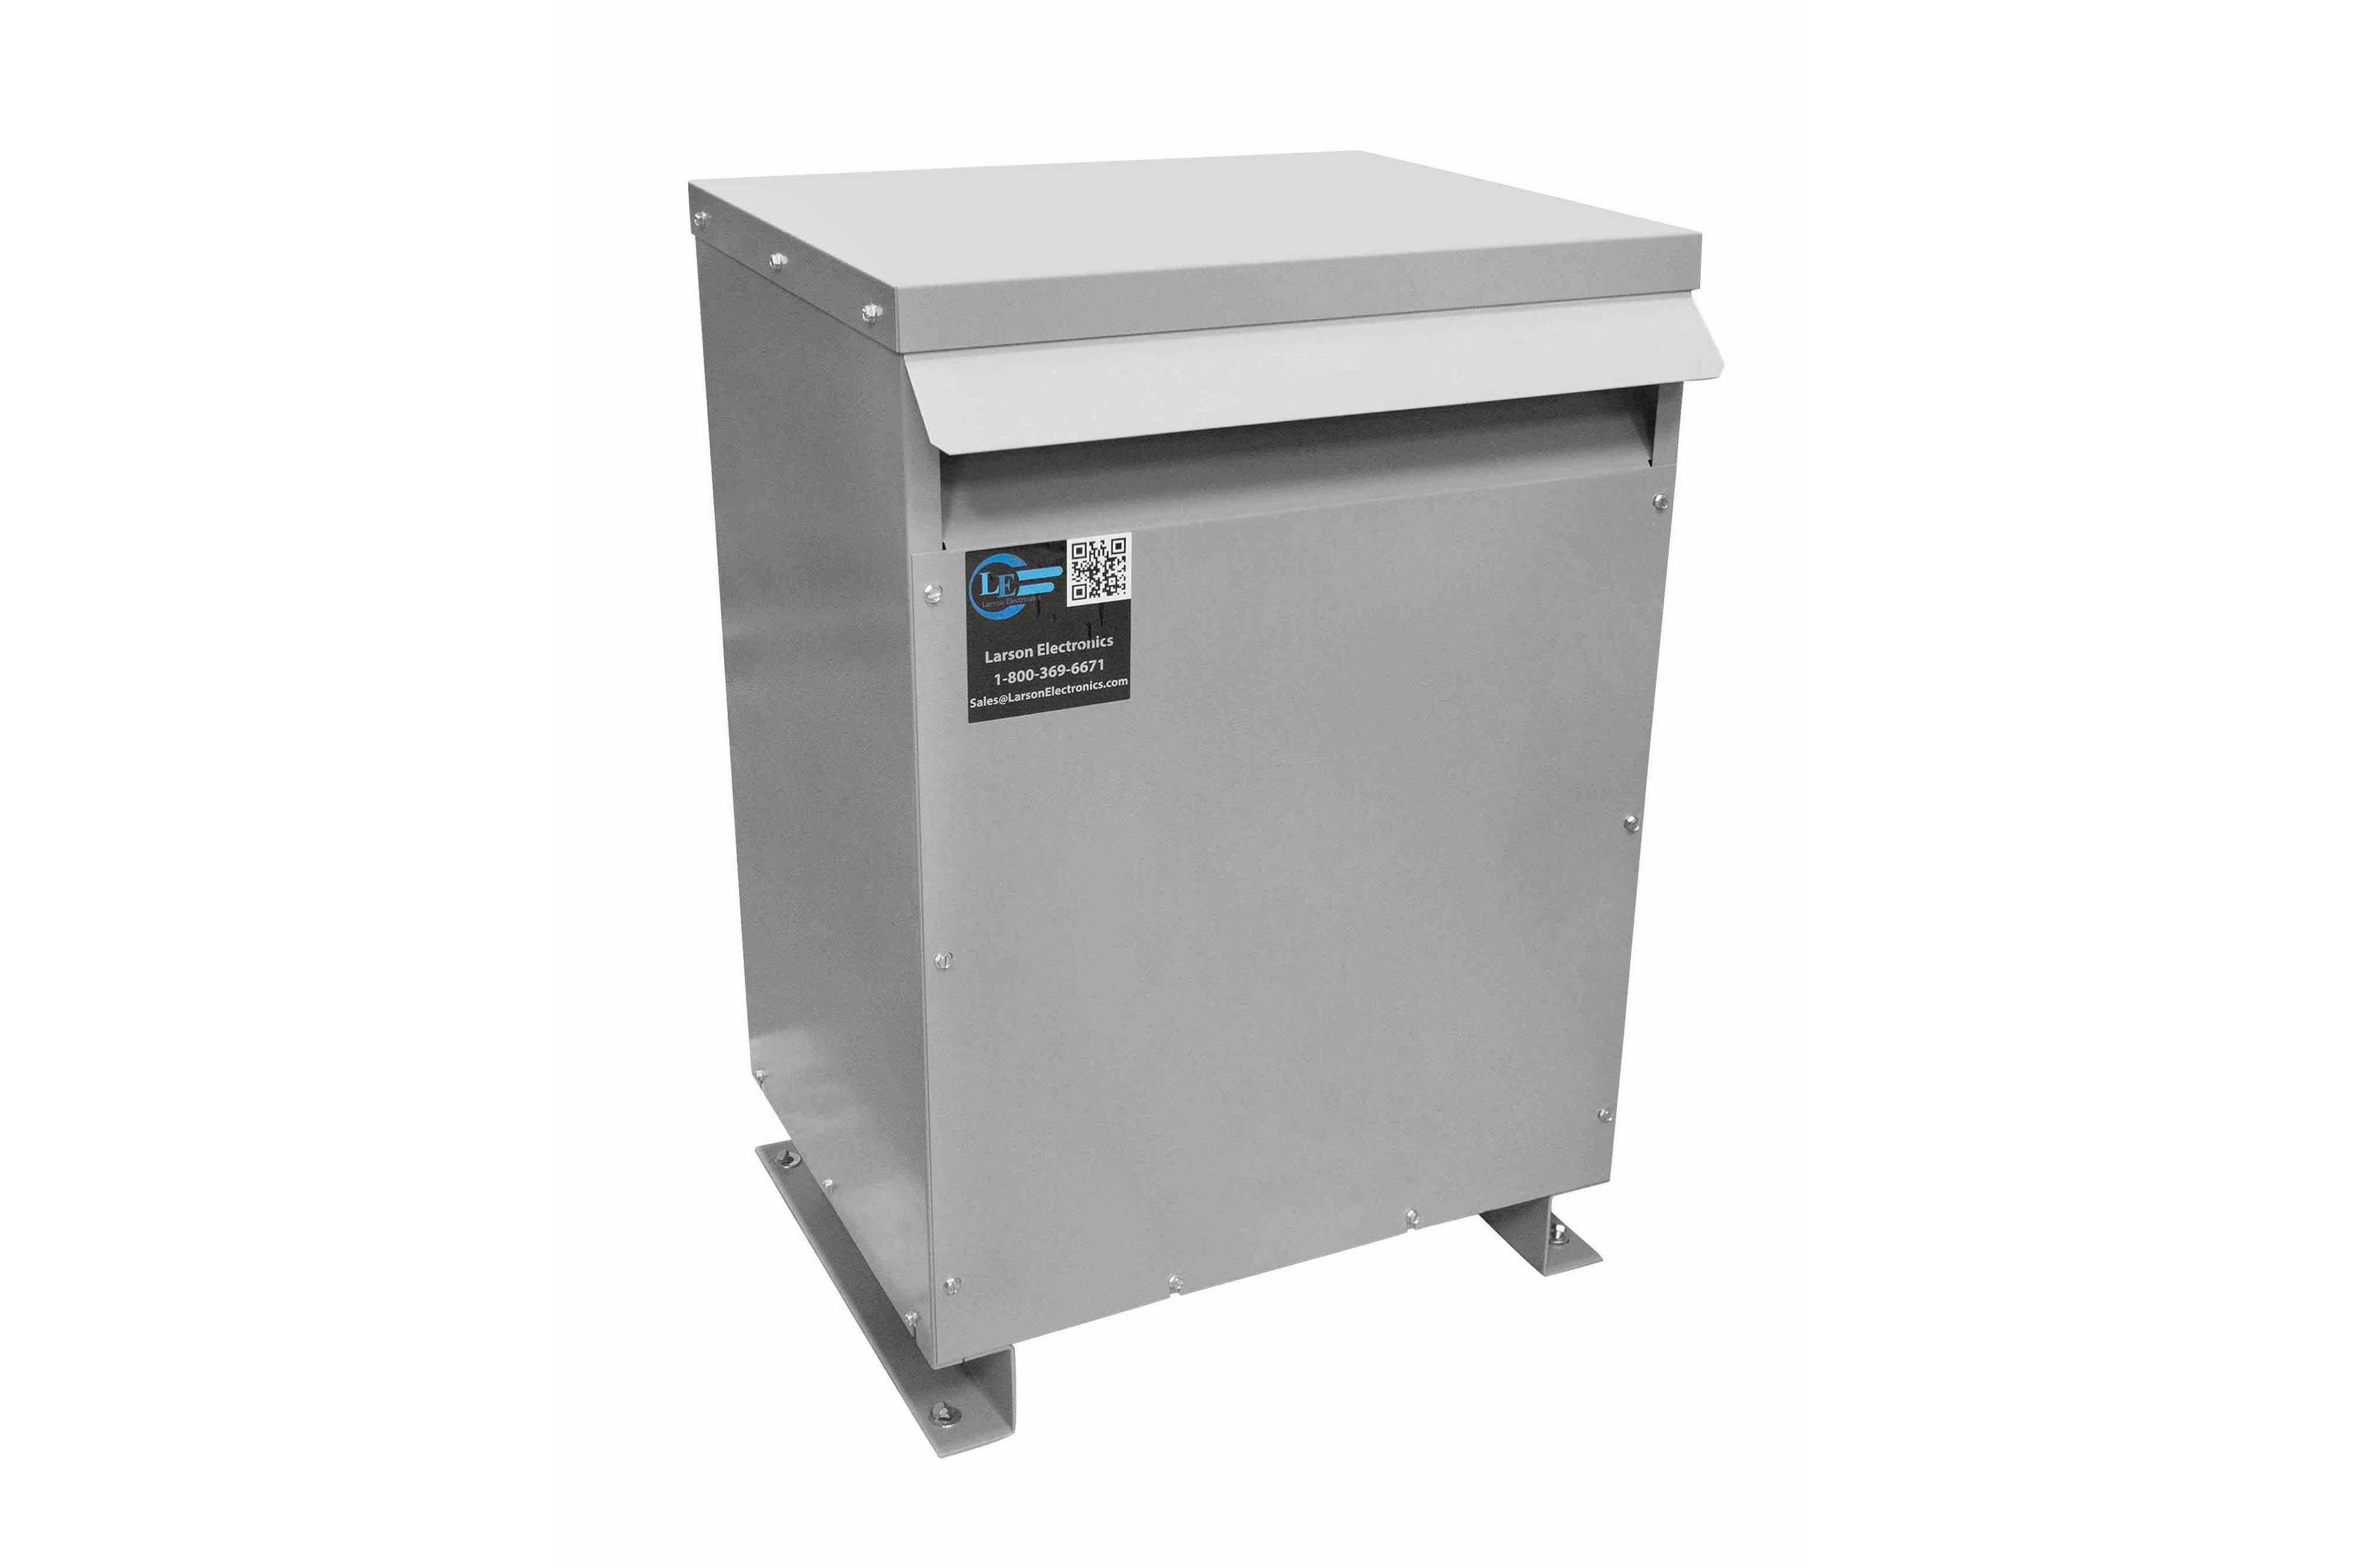 500 kVA 3PH Isolation Transformer, 208V Wye Primary, 600Y/347 Wye-N Secondary, N3R, Ventilated, 60 Hz